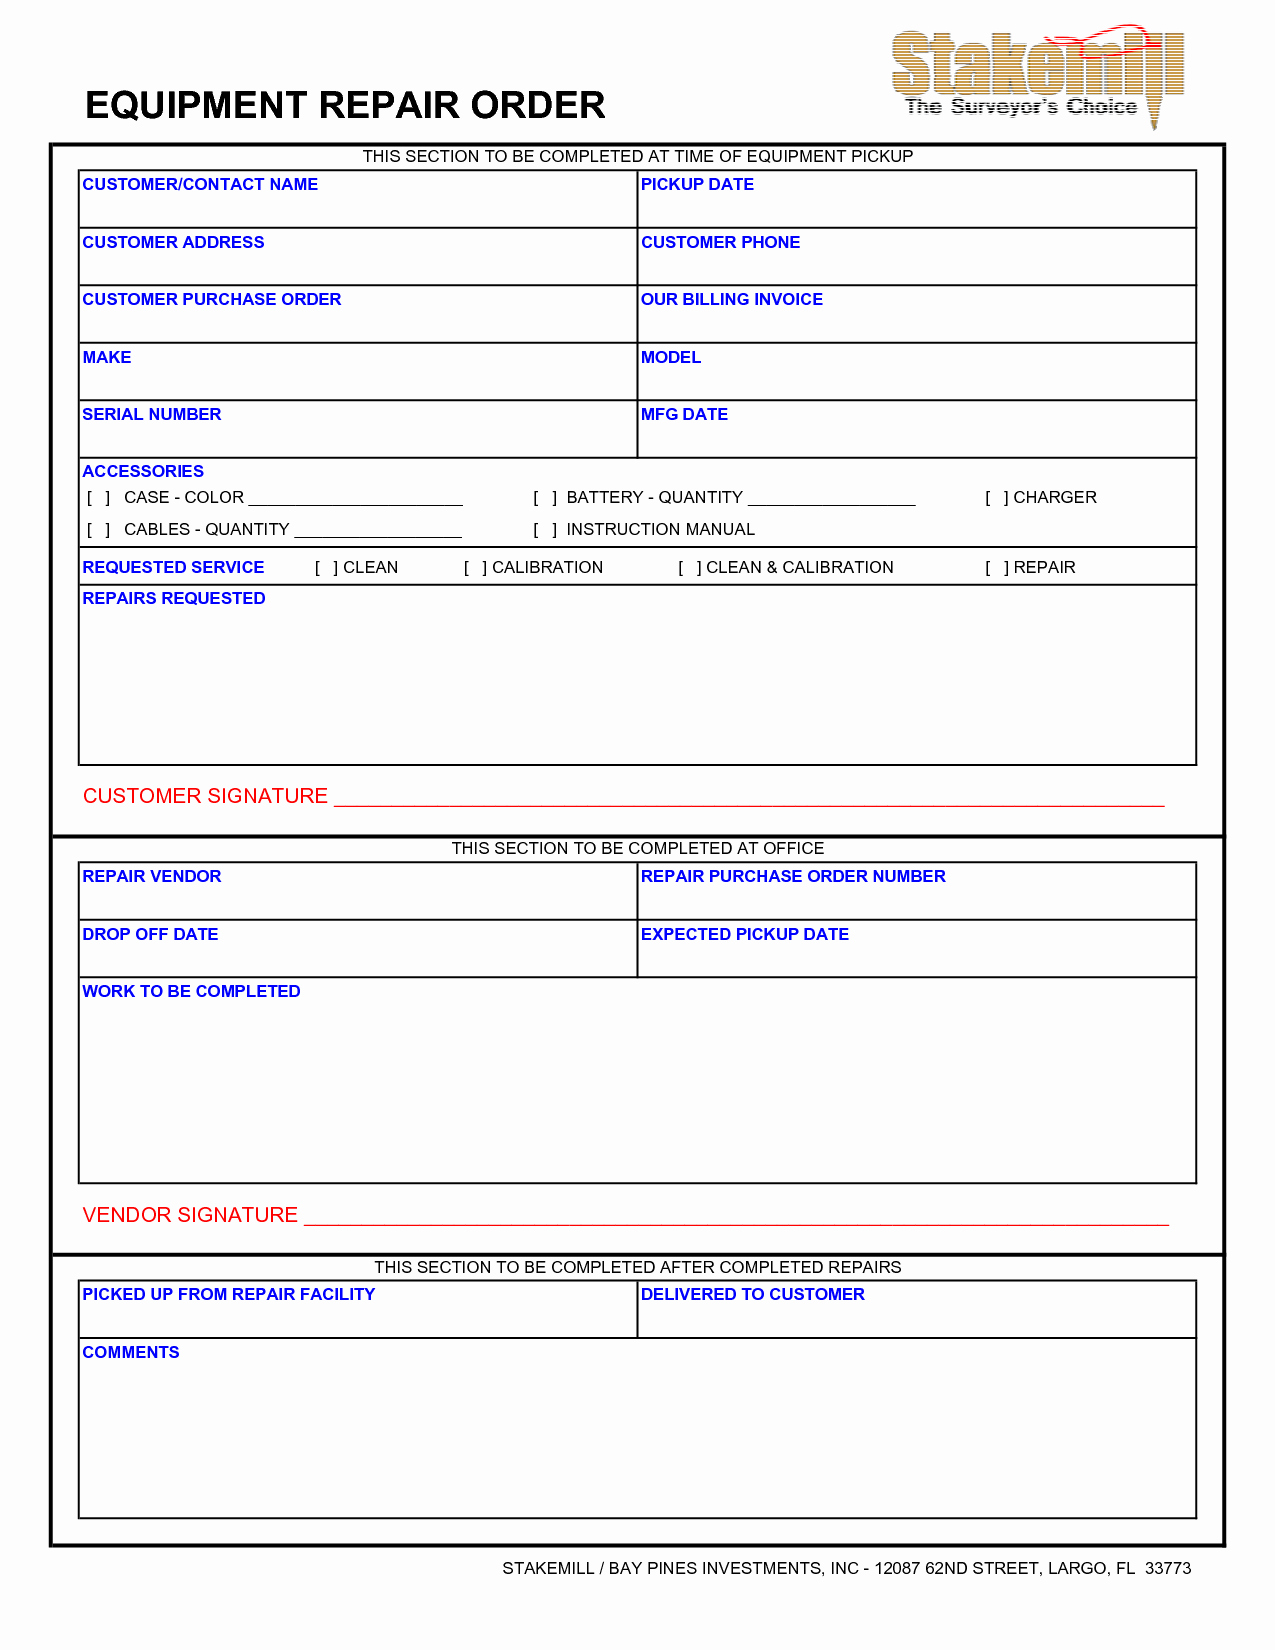 Computer Repair forms Template Lovely Equipment Repair form 10 Features Equipment Repair form